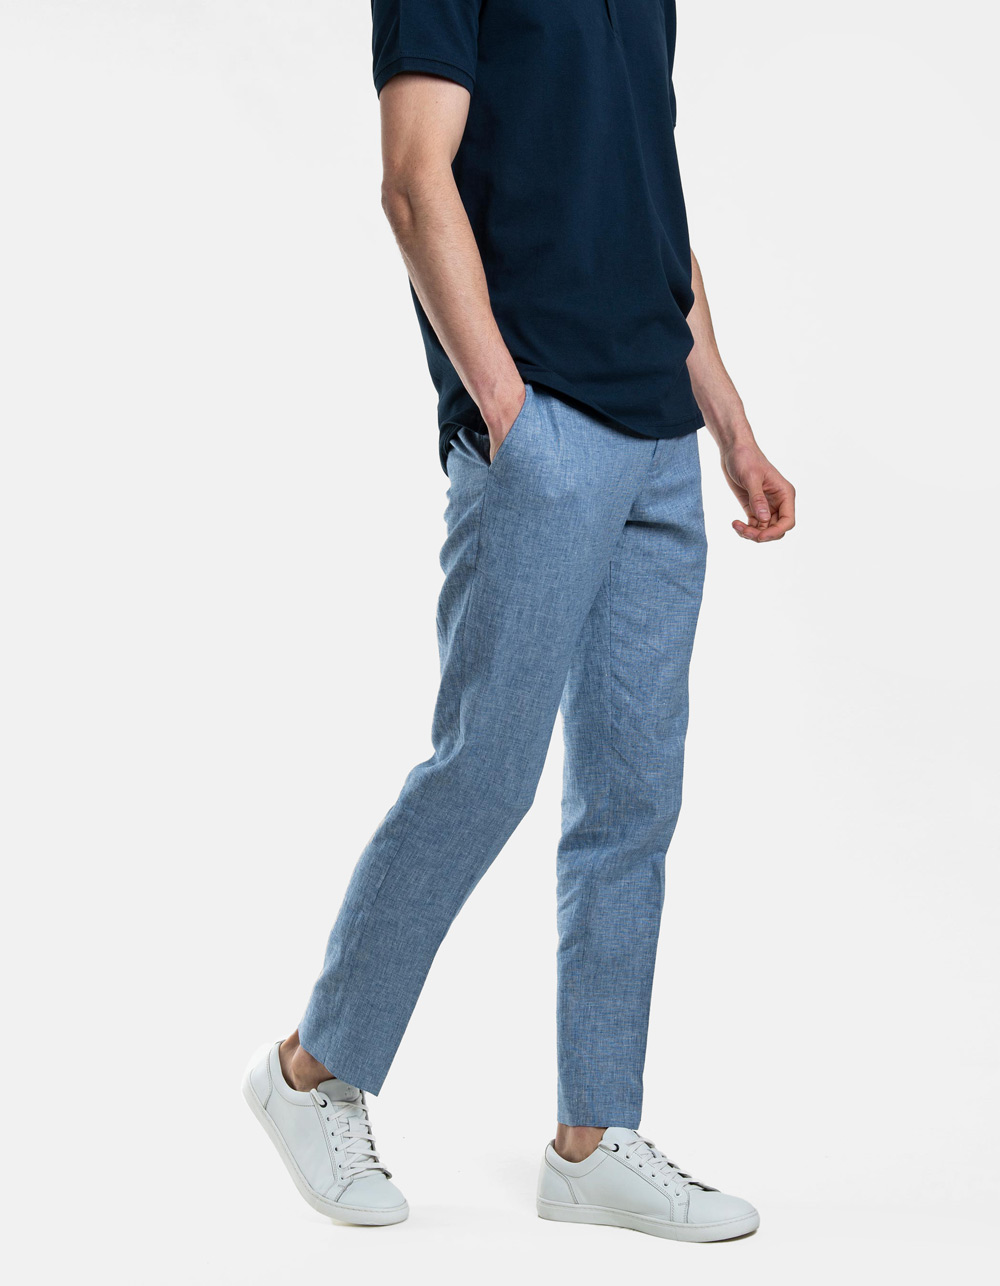 Blue plain trousers